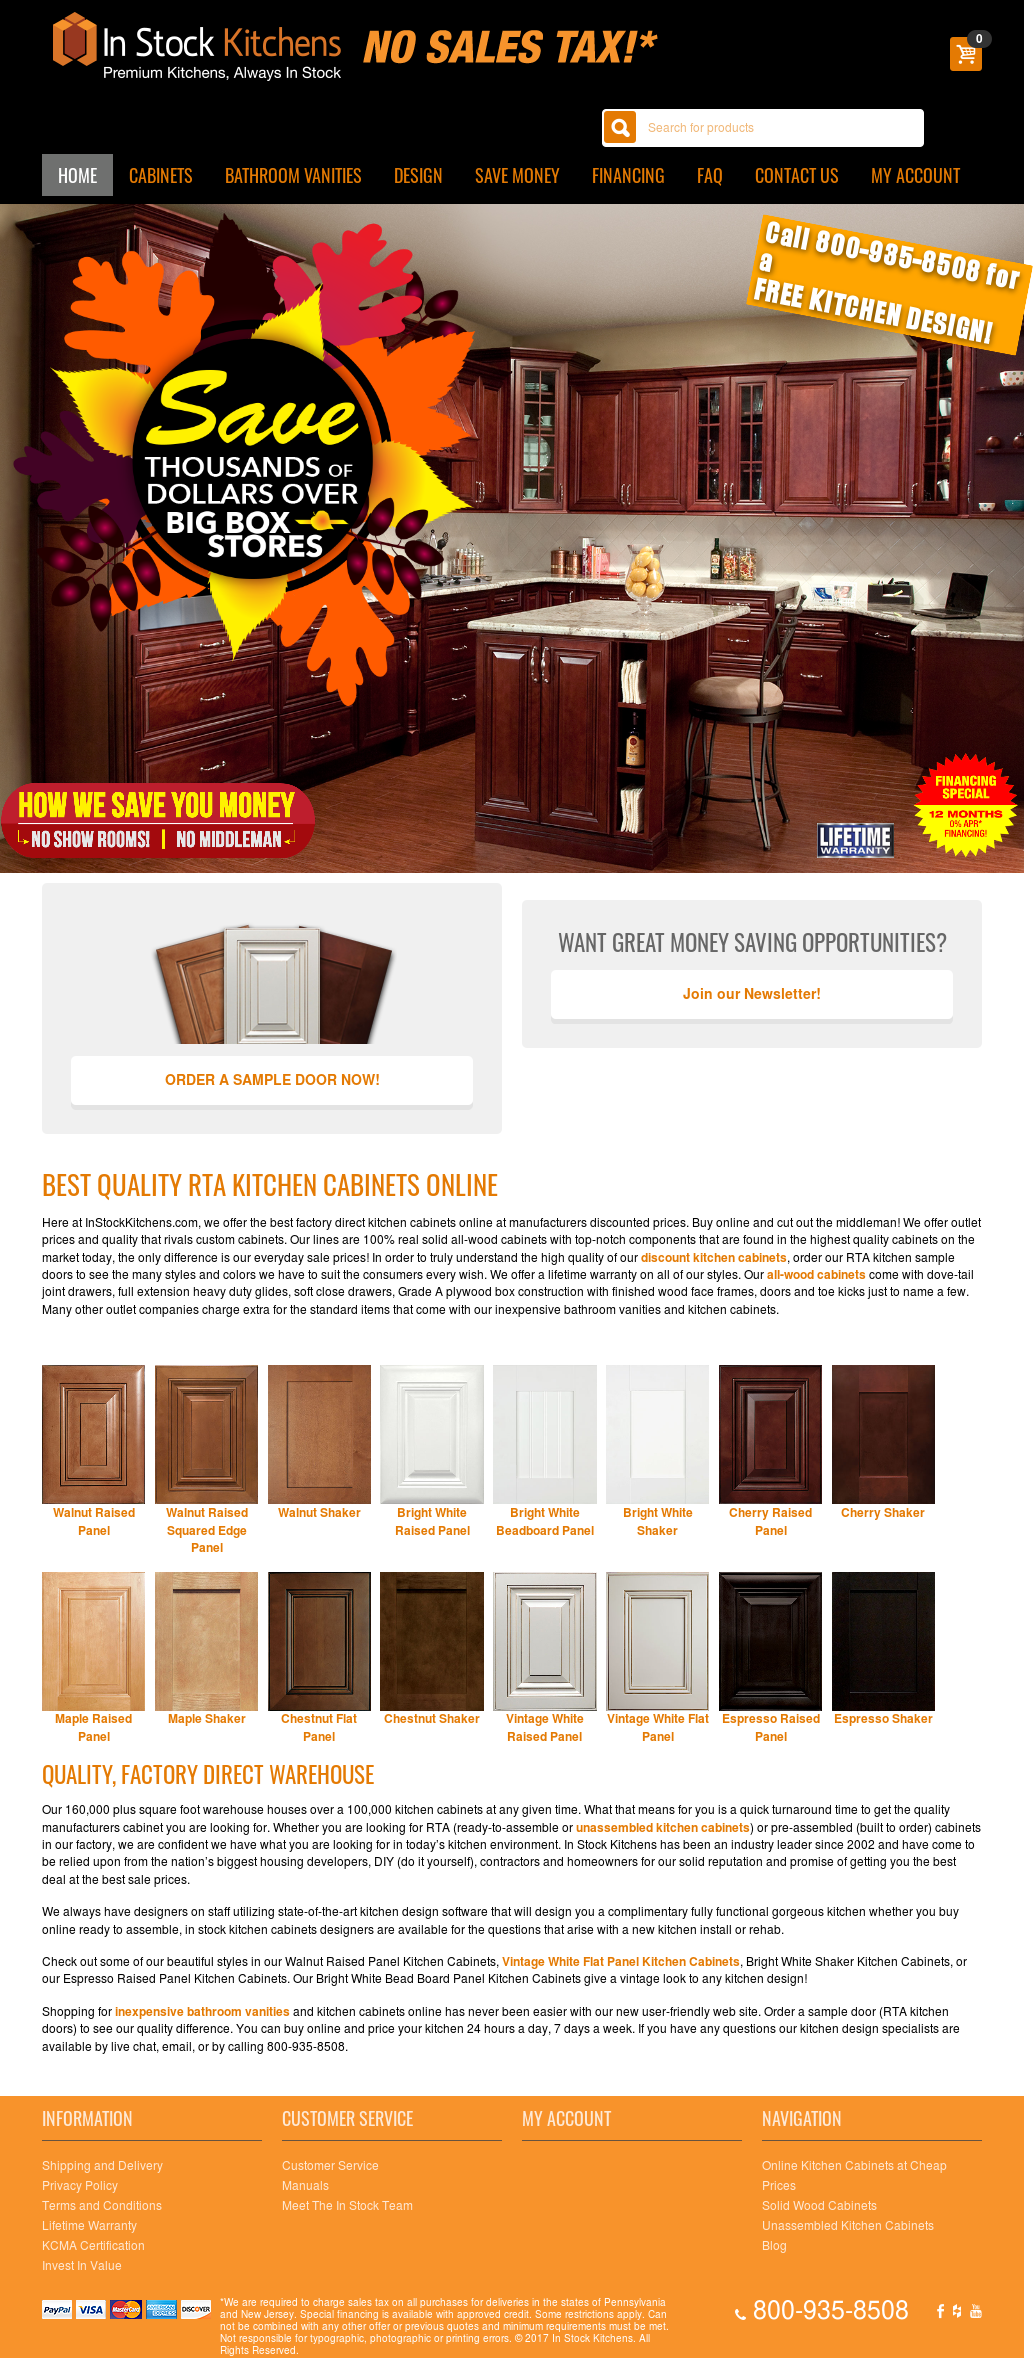 Instock Kitchens Competitors, Revenue and Employees - Owler Company ...